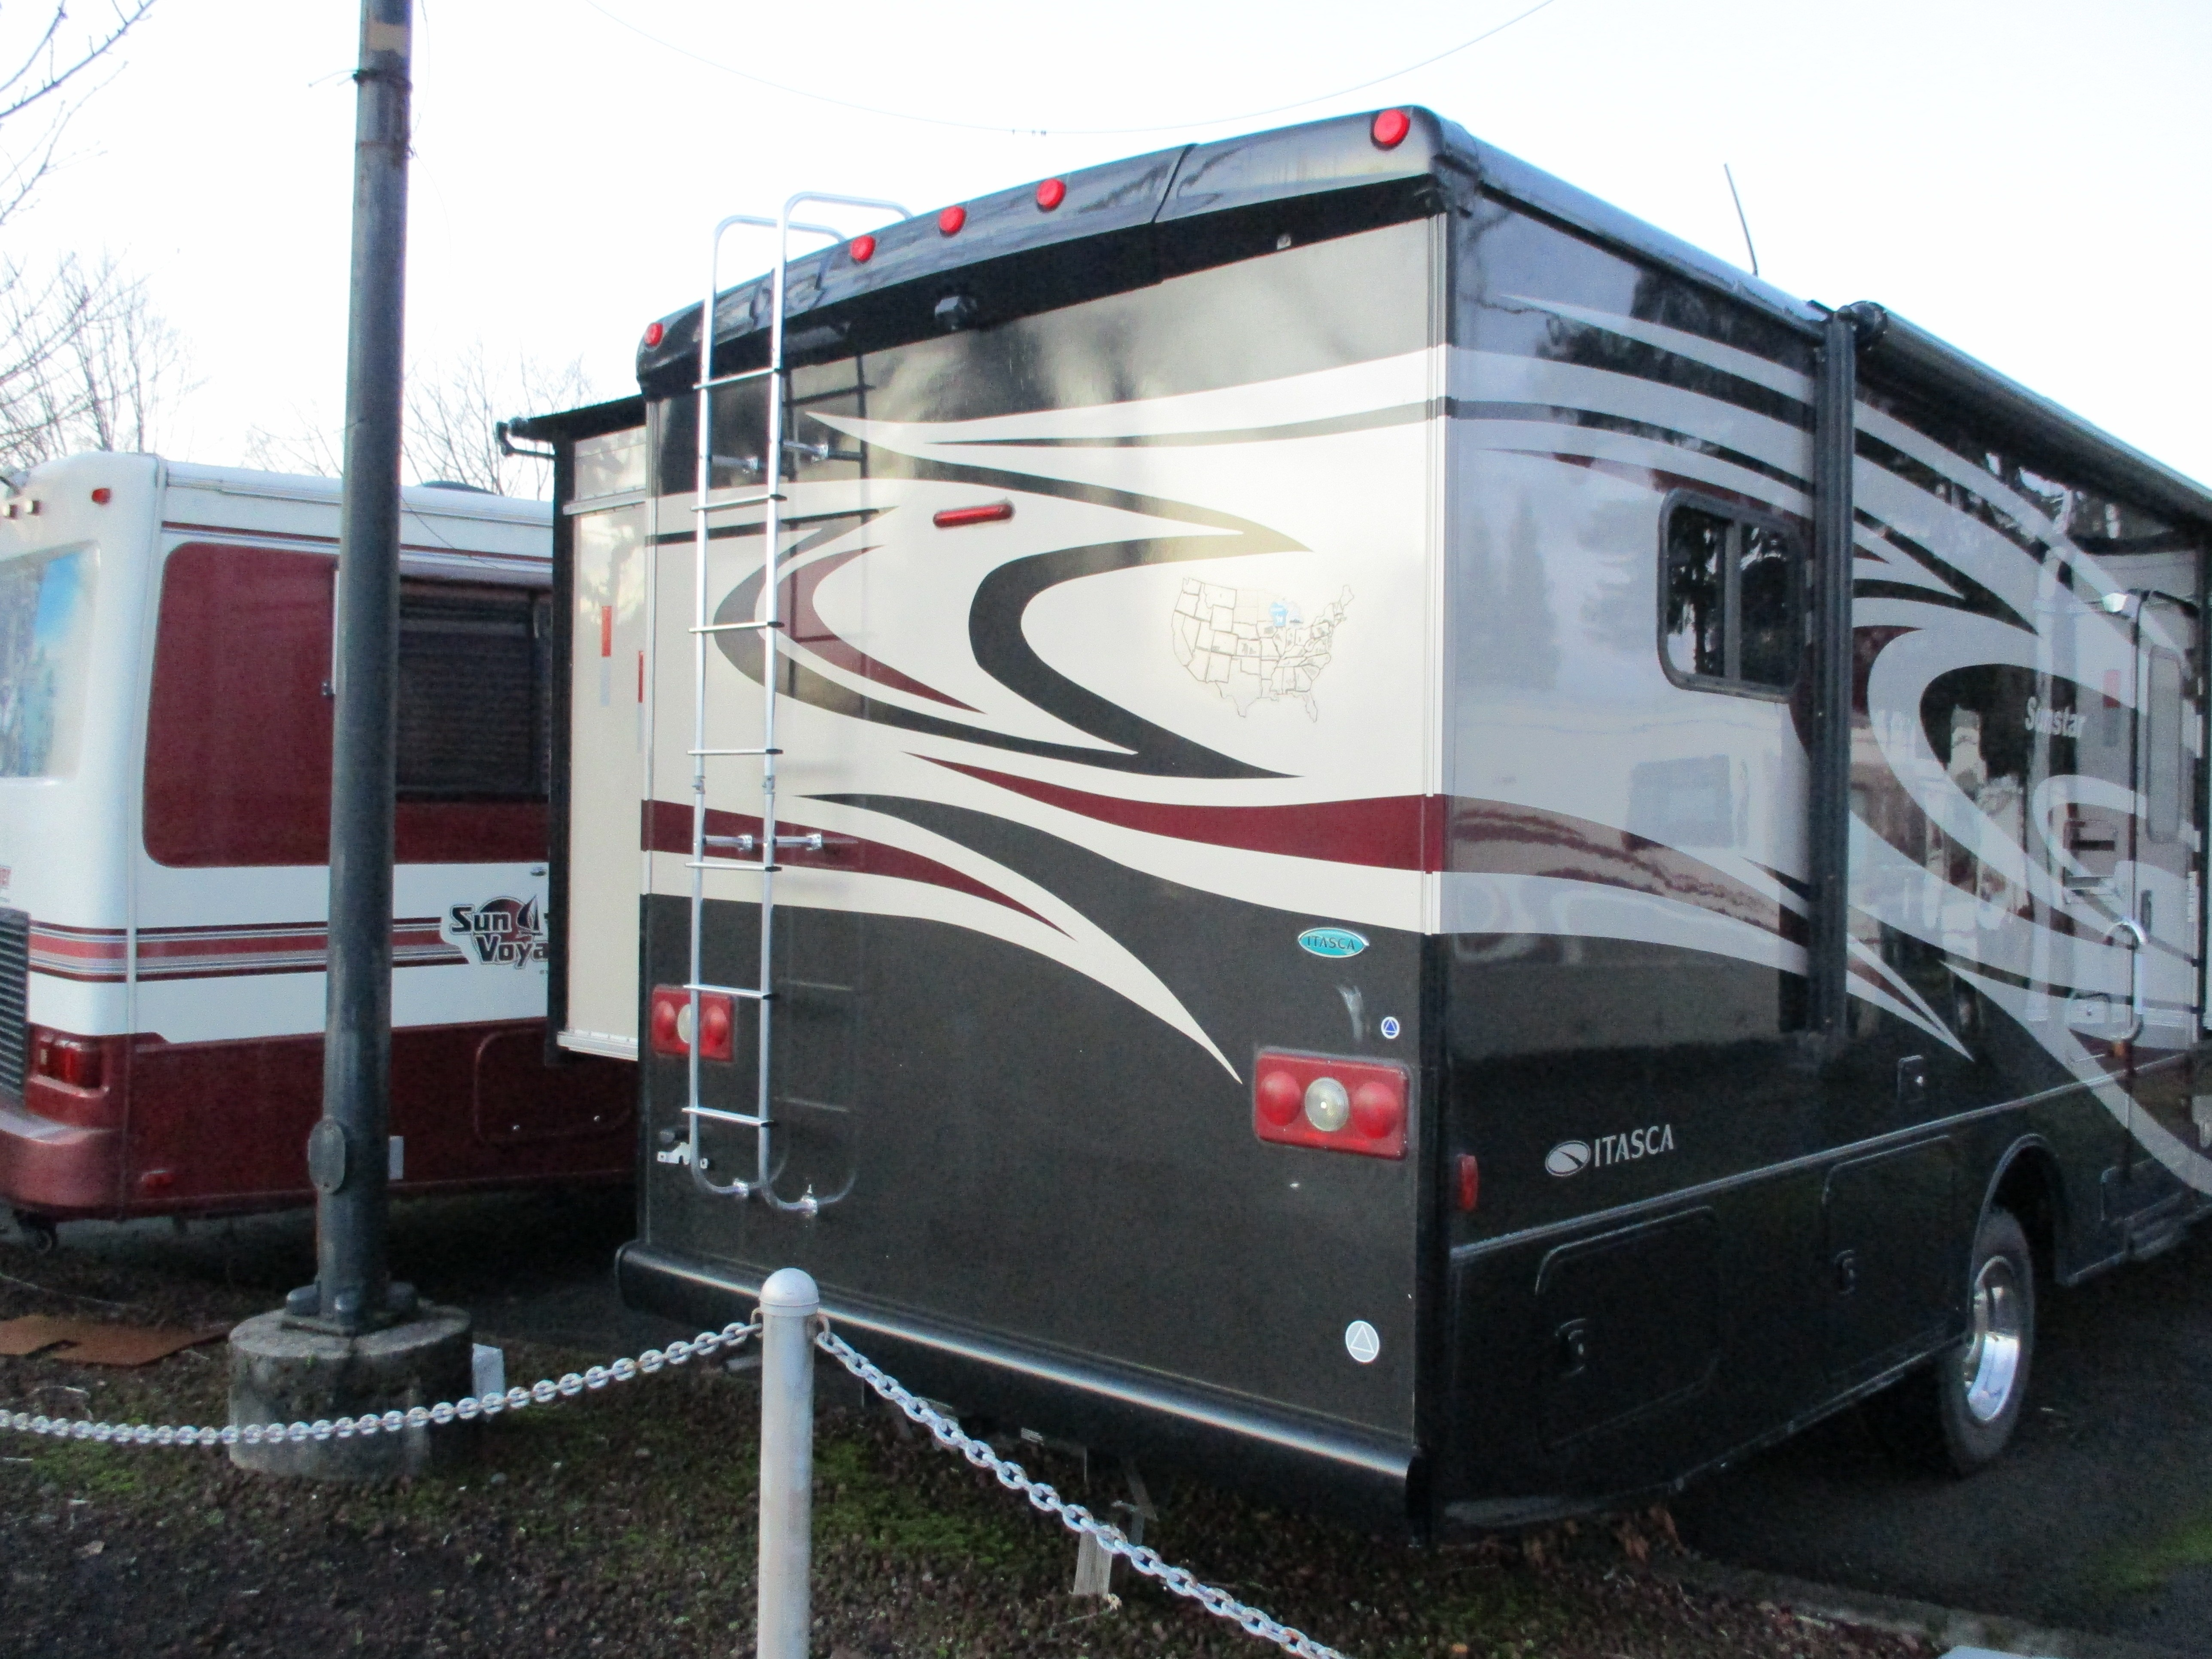 Used, 2014, Itasca, SUNSTAR, RV - Class A